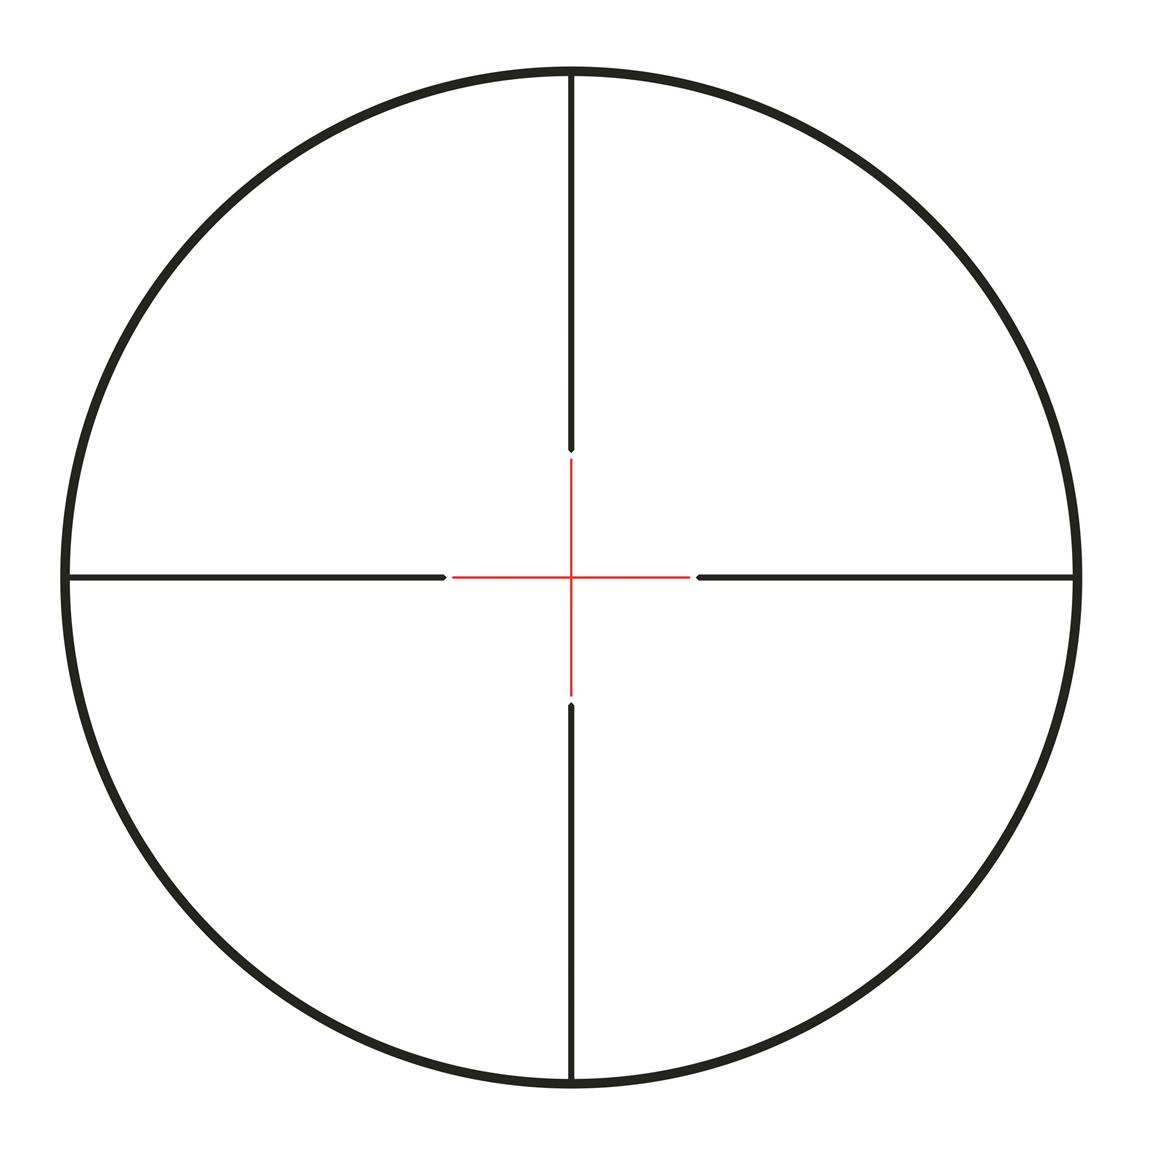 Illuminated Plex reticle